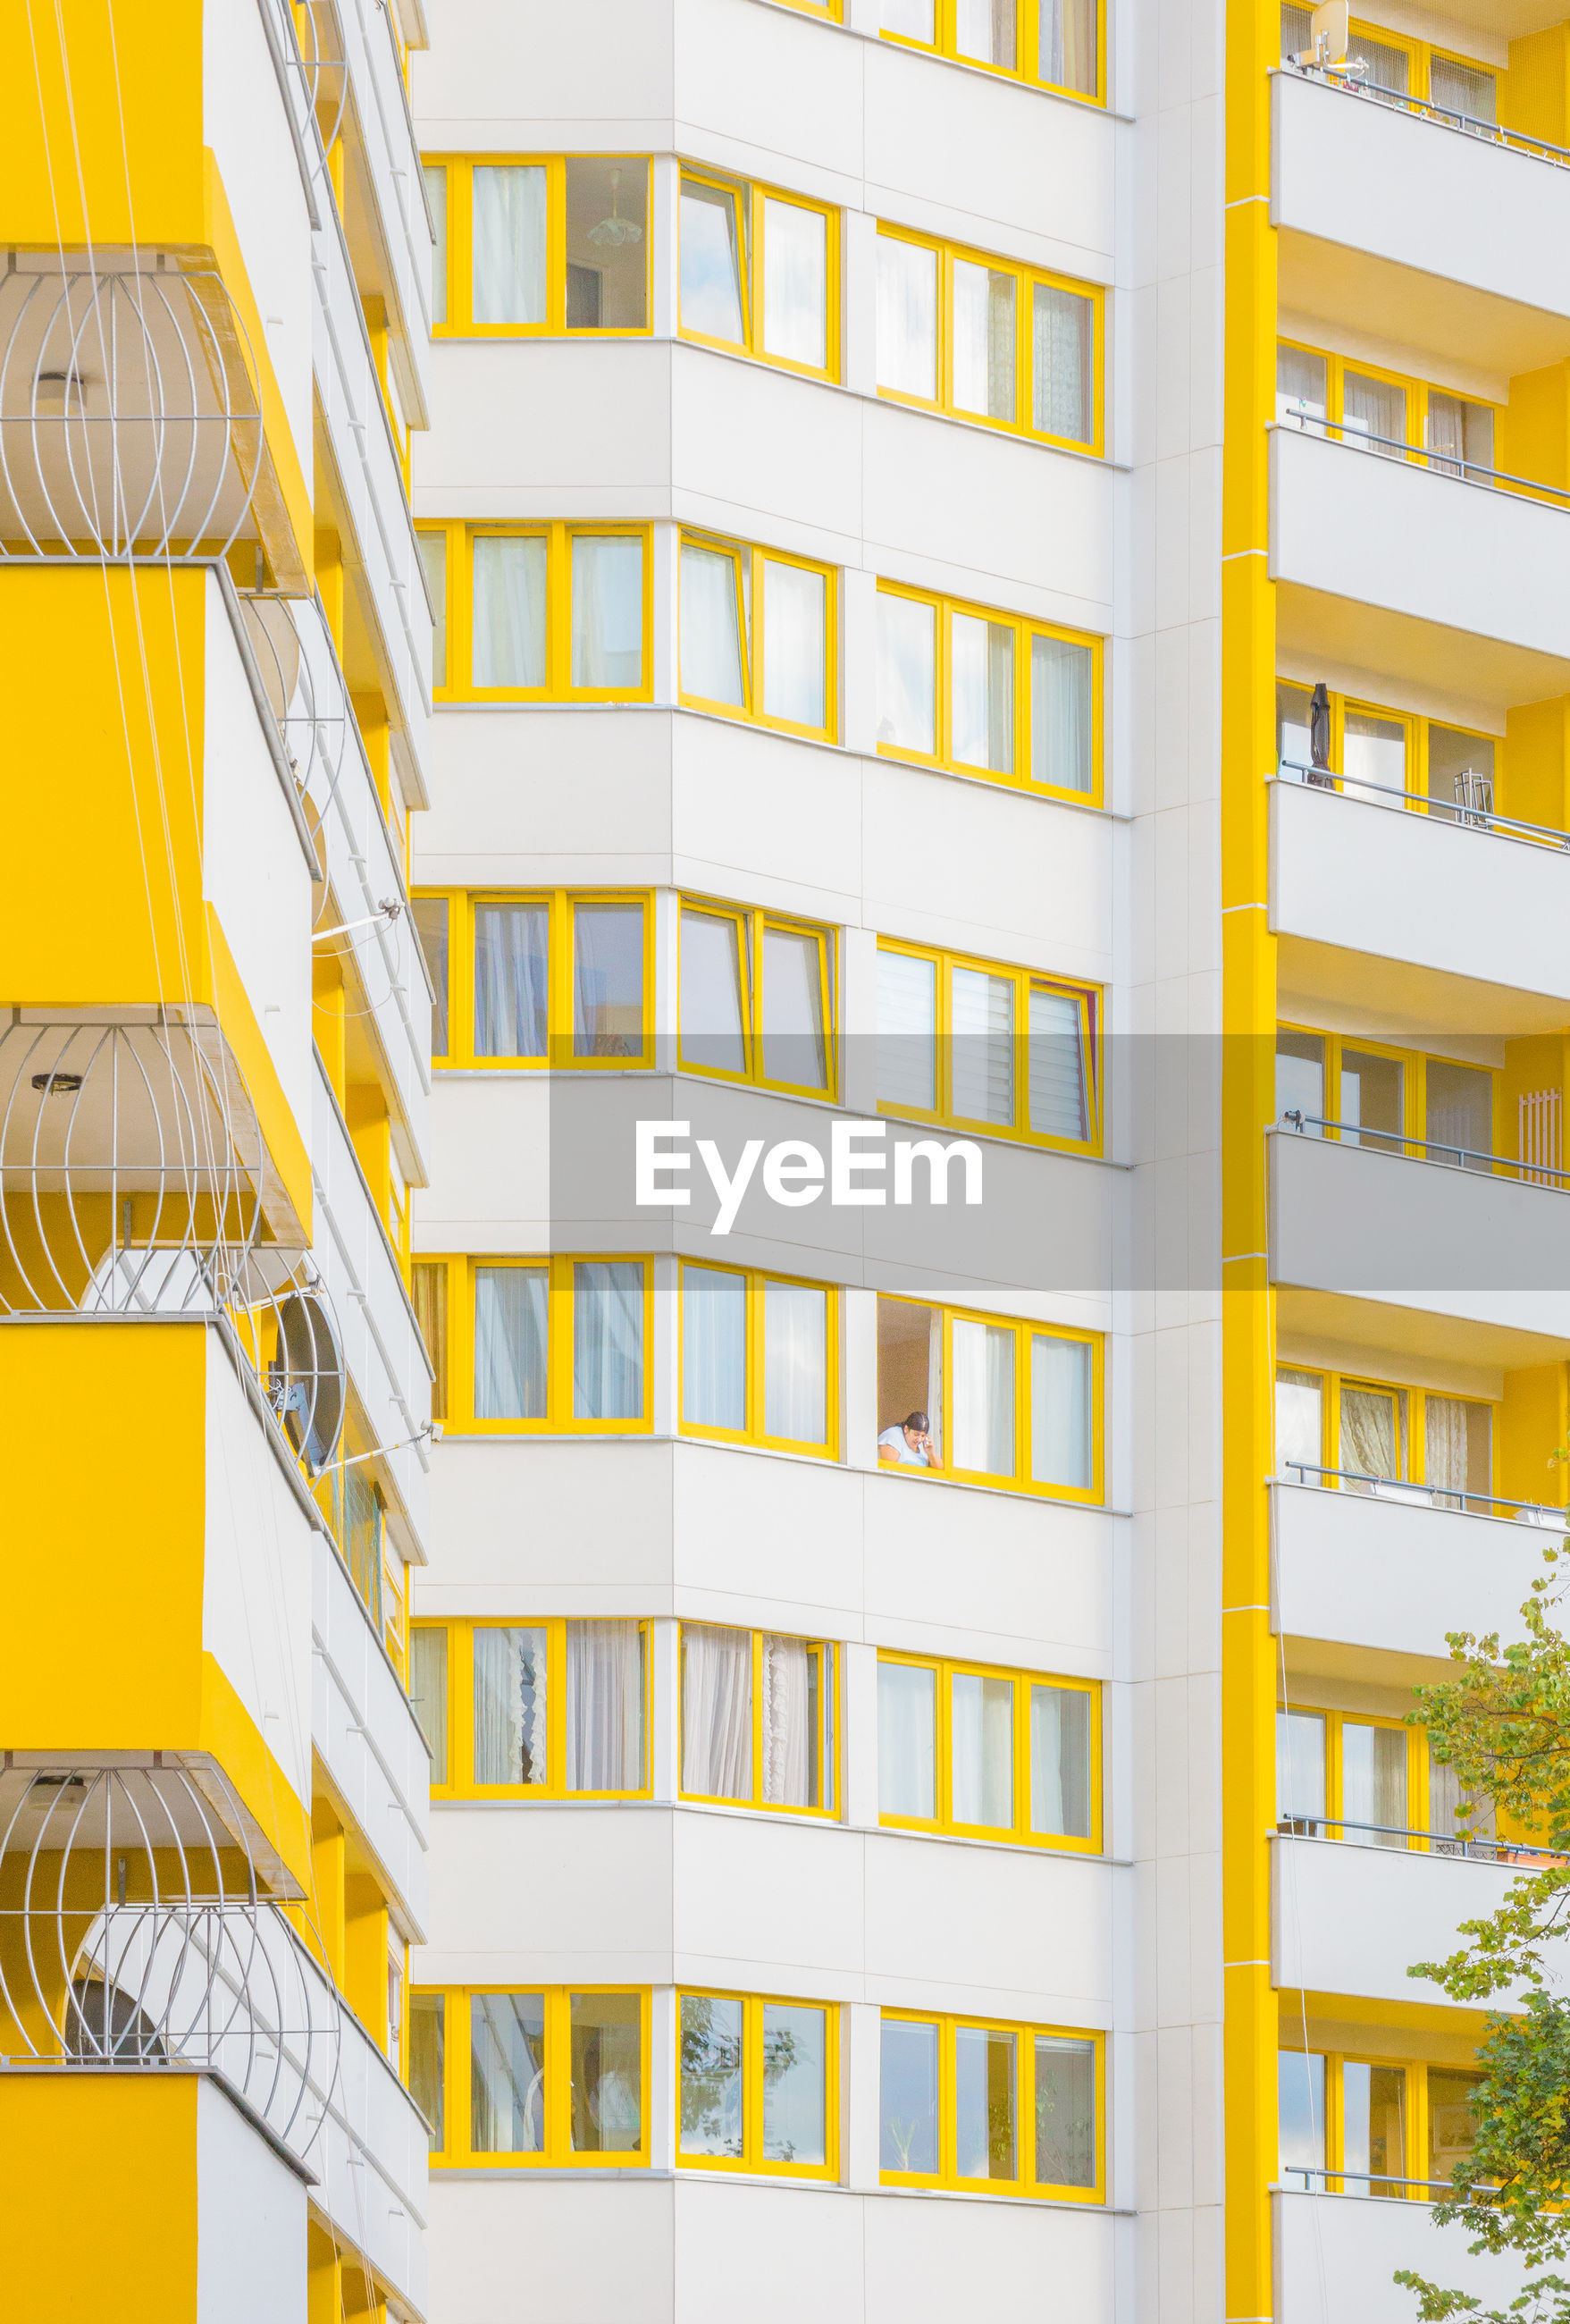 architecture, building exterior, built structure, city, window, yellow, no people, modern, full frame, outdoors, apartment, residential, day, cityscape